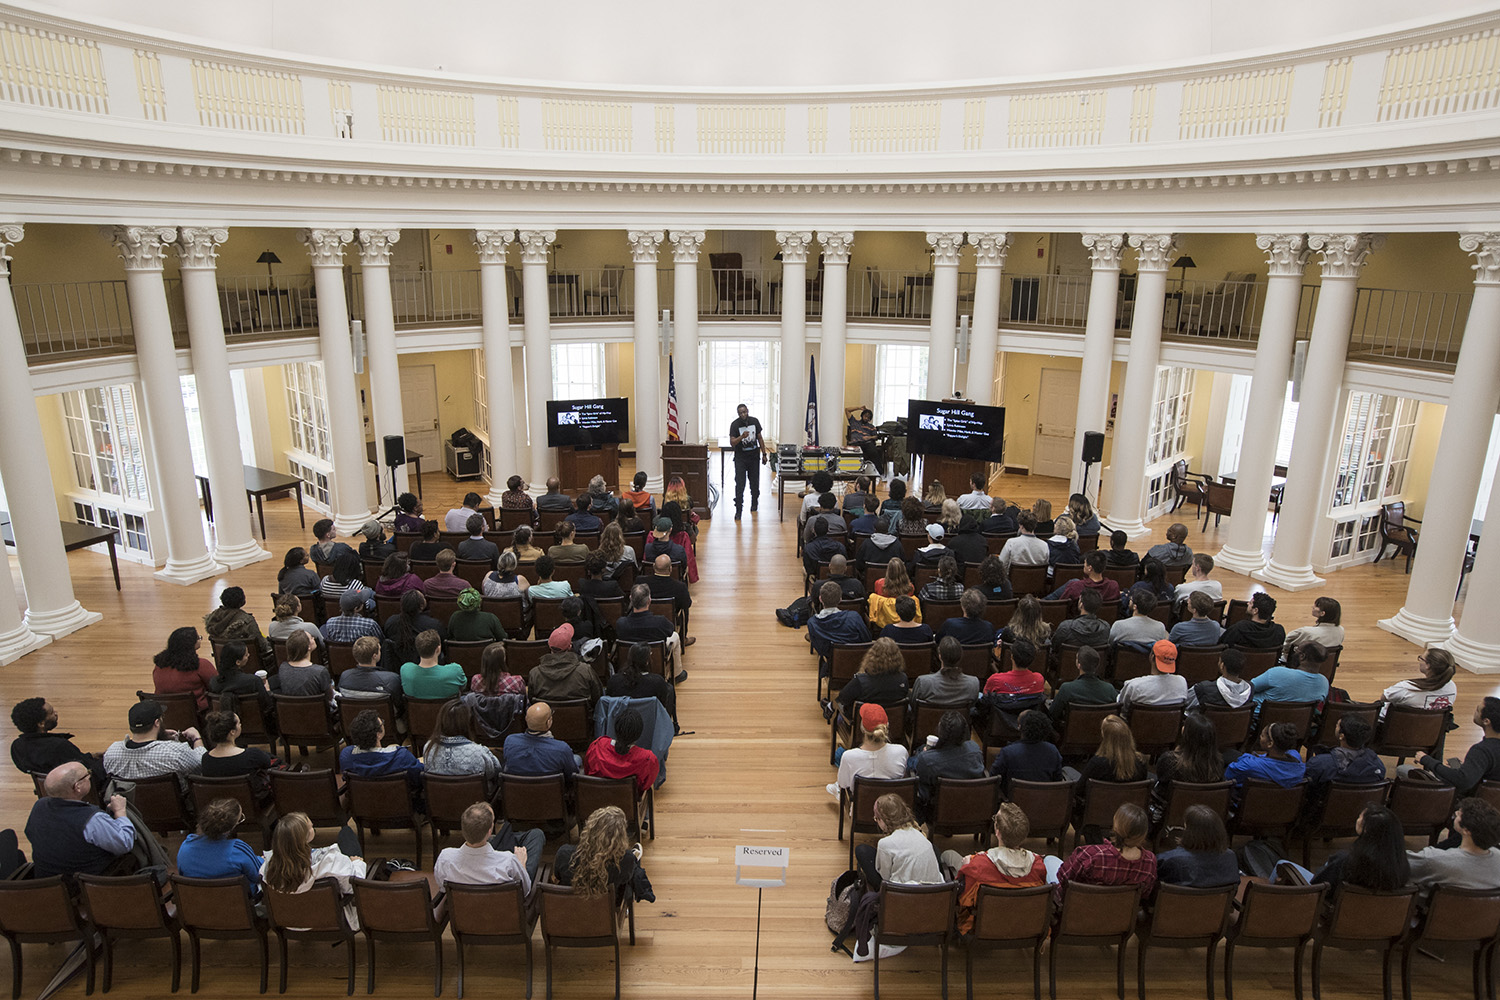 Students, faculty and community members packed the Rotunda's Dome Room for 9th Wonder's talk on the history of hip-hop. (Photo by Dan Addison, University Communications)